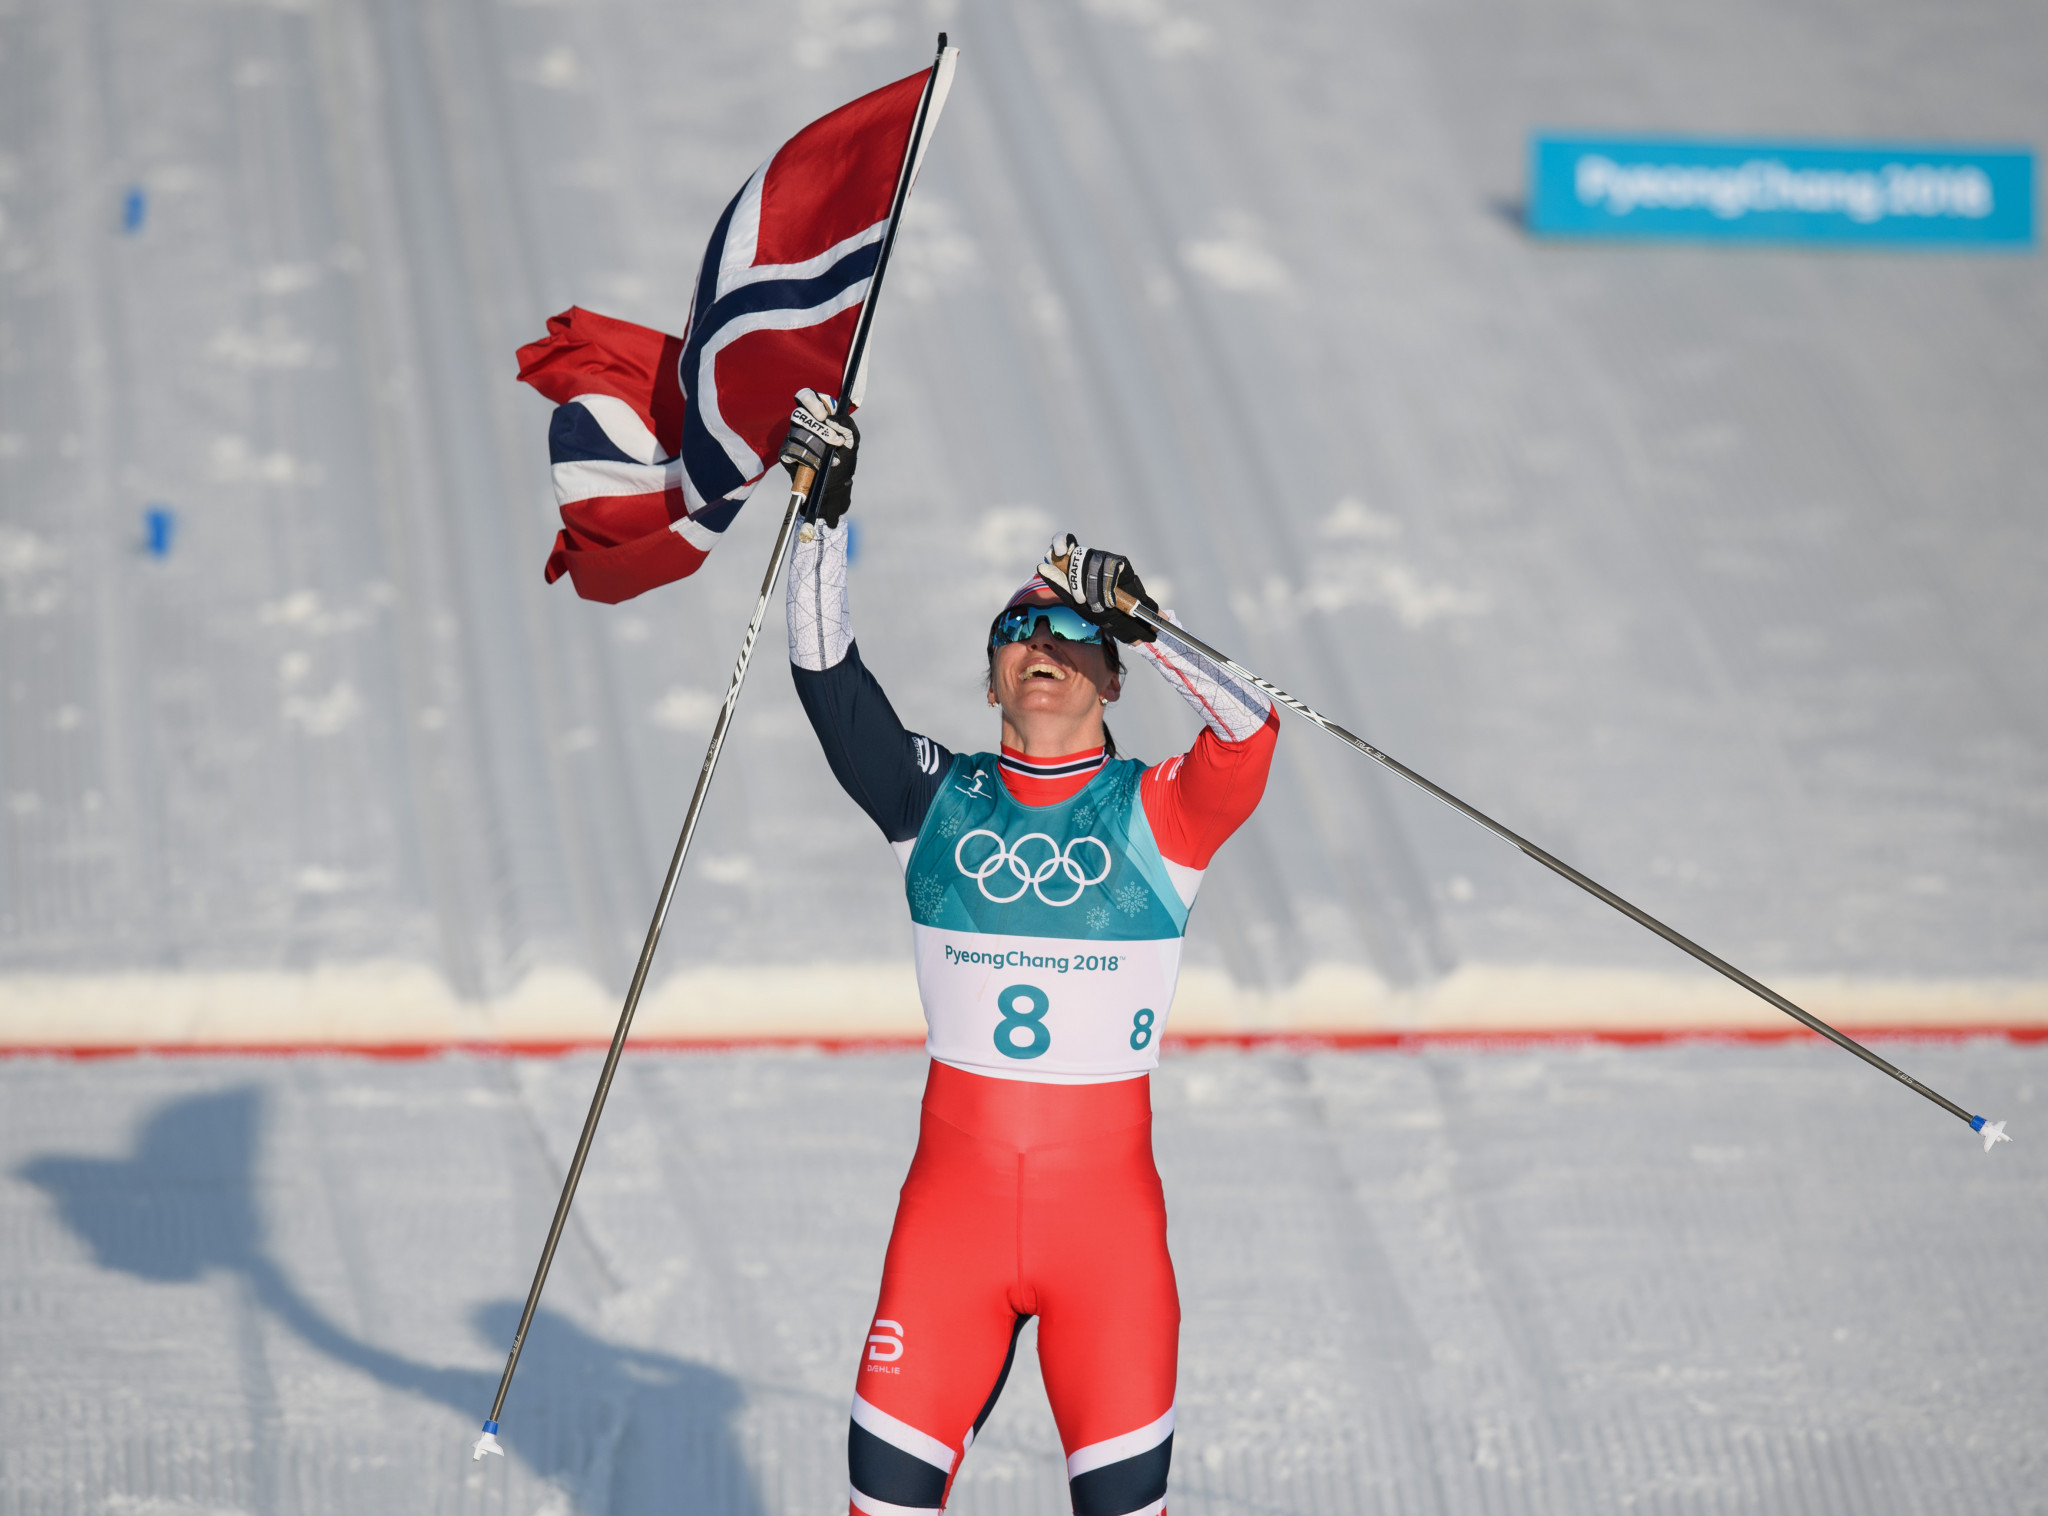 The EOC President reserved praise for Norway, after they topped the Pyeongchang 2018 medals table ©Getty Images